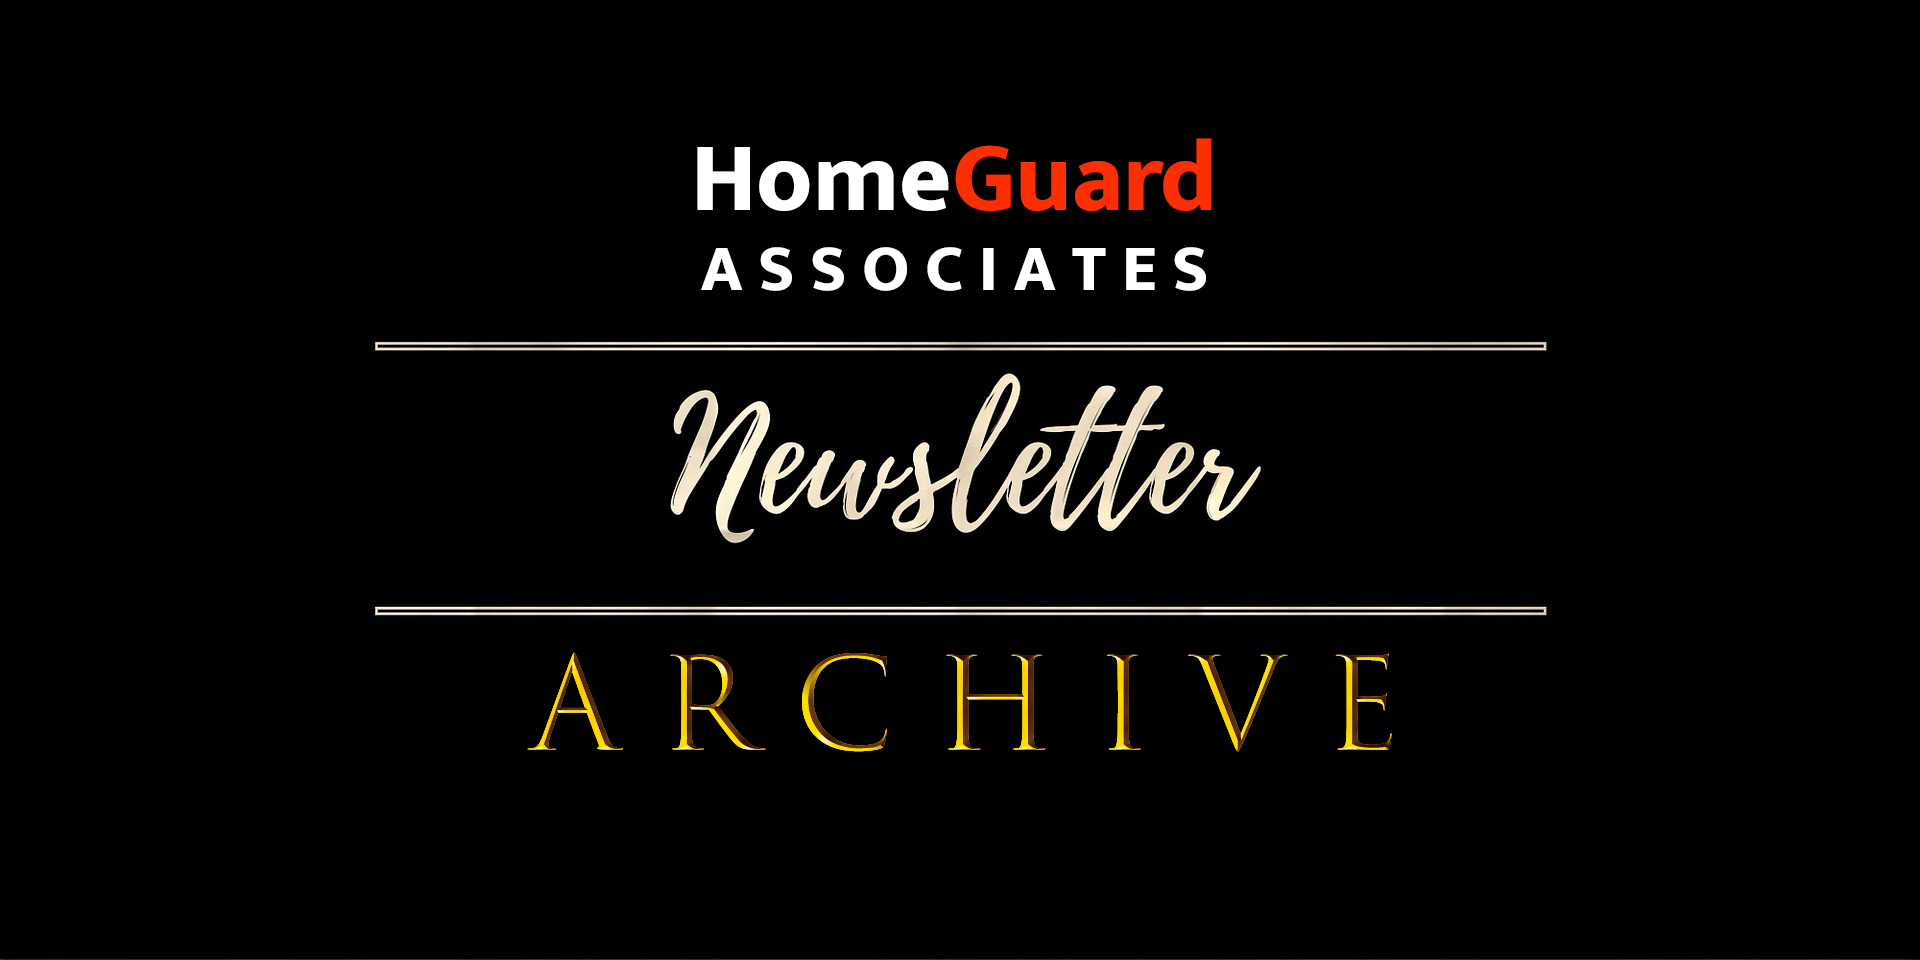 homeguard-archives